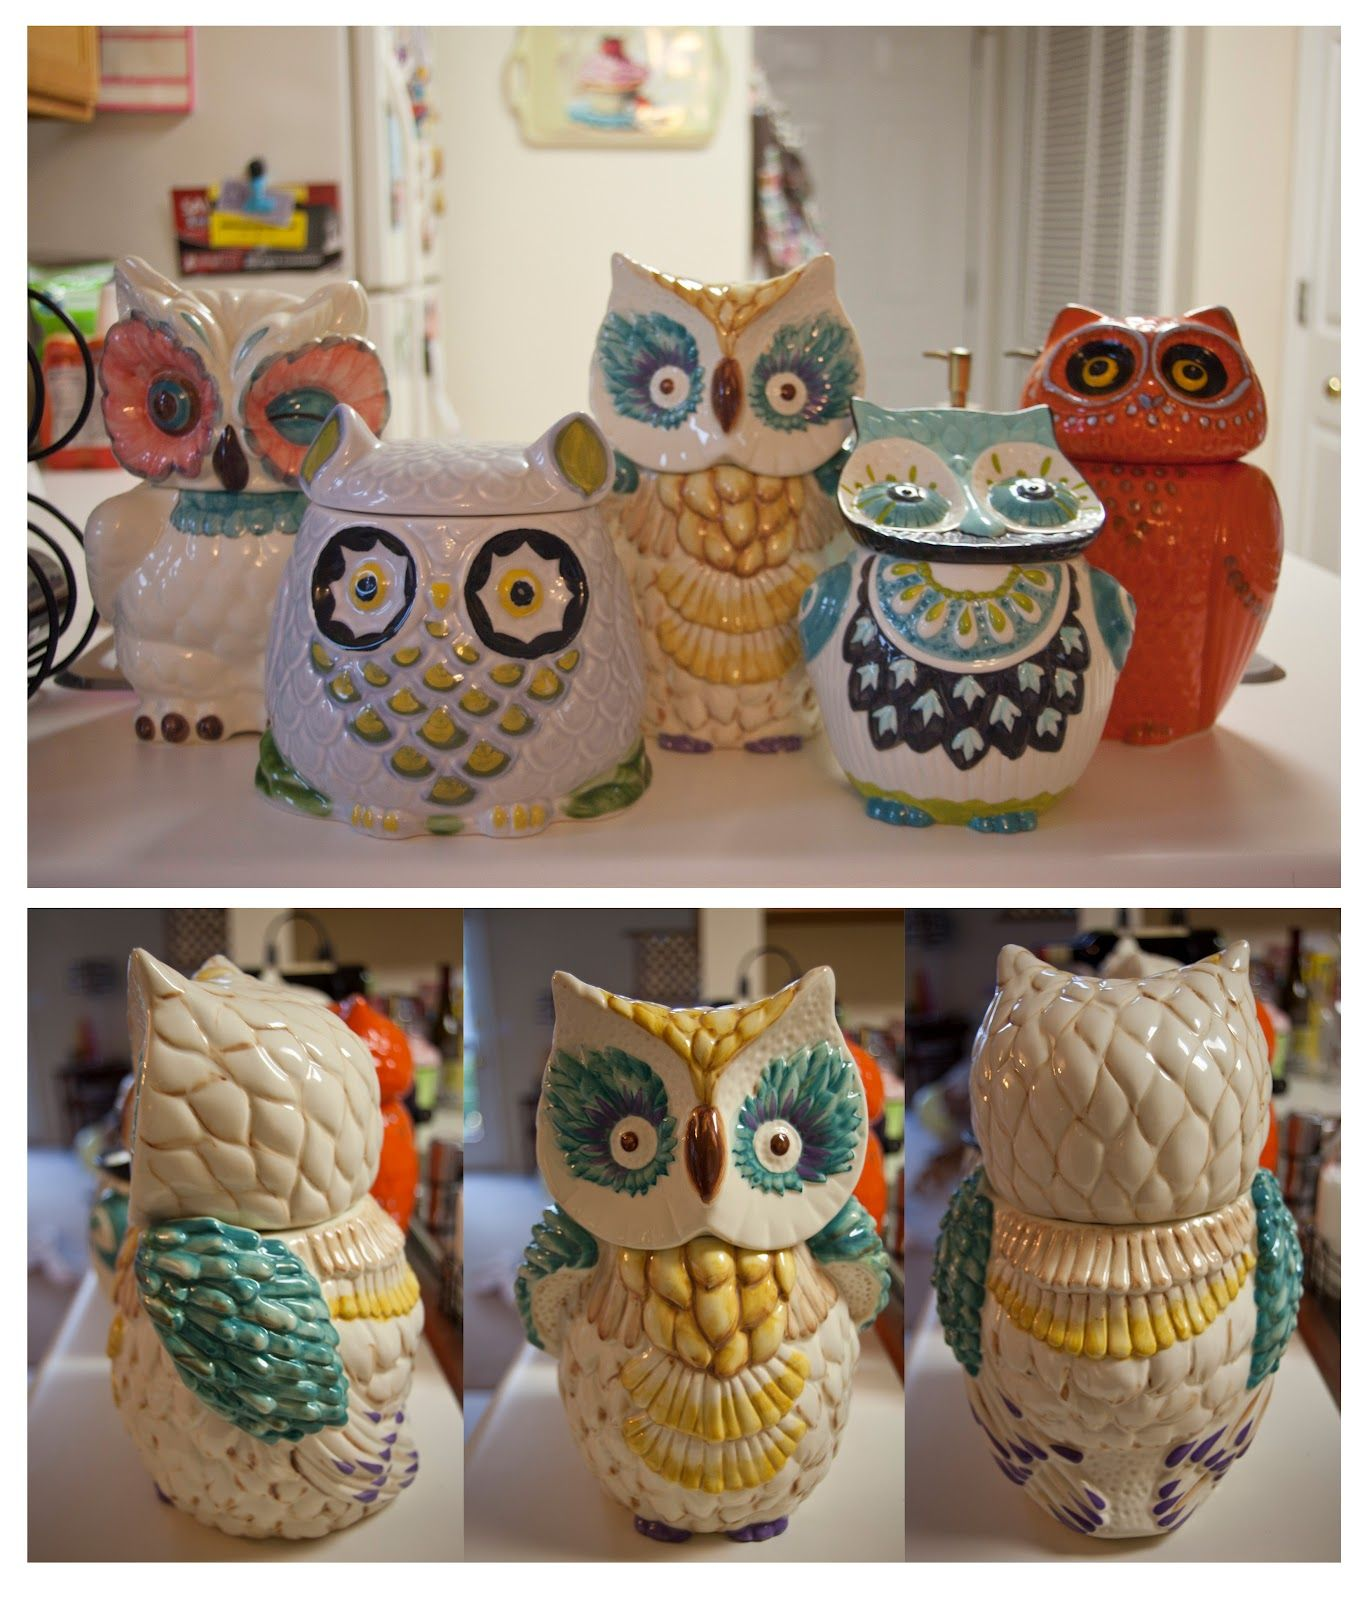 Owl Cookie Jars After Looking At Pier 1 We Think The New Kitchen Will Be This Theme Bella Would So Hy